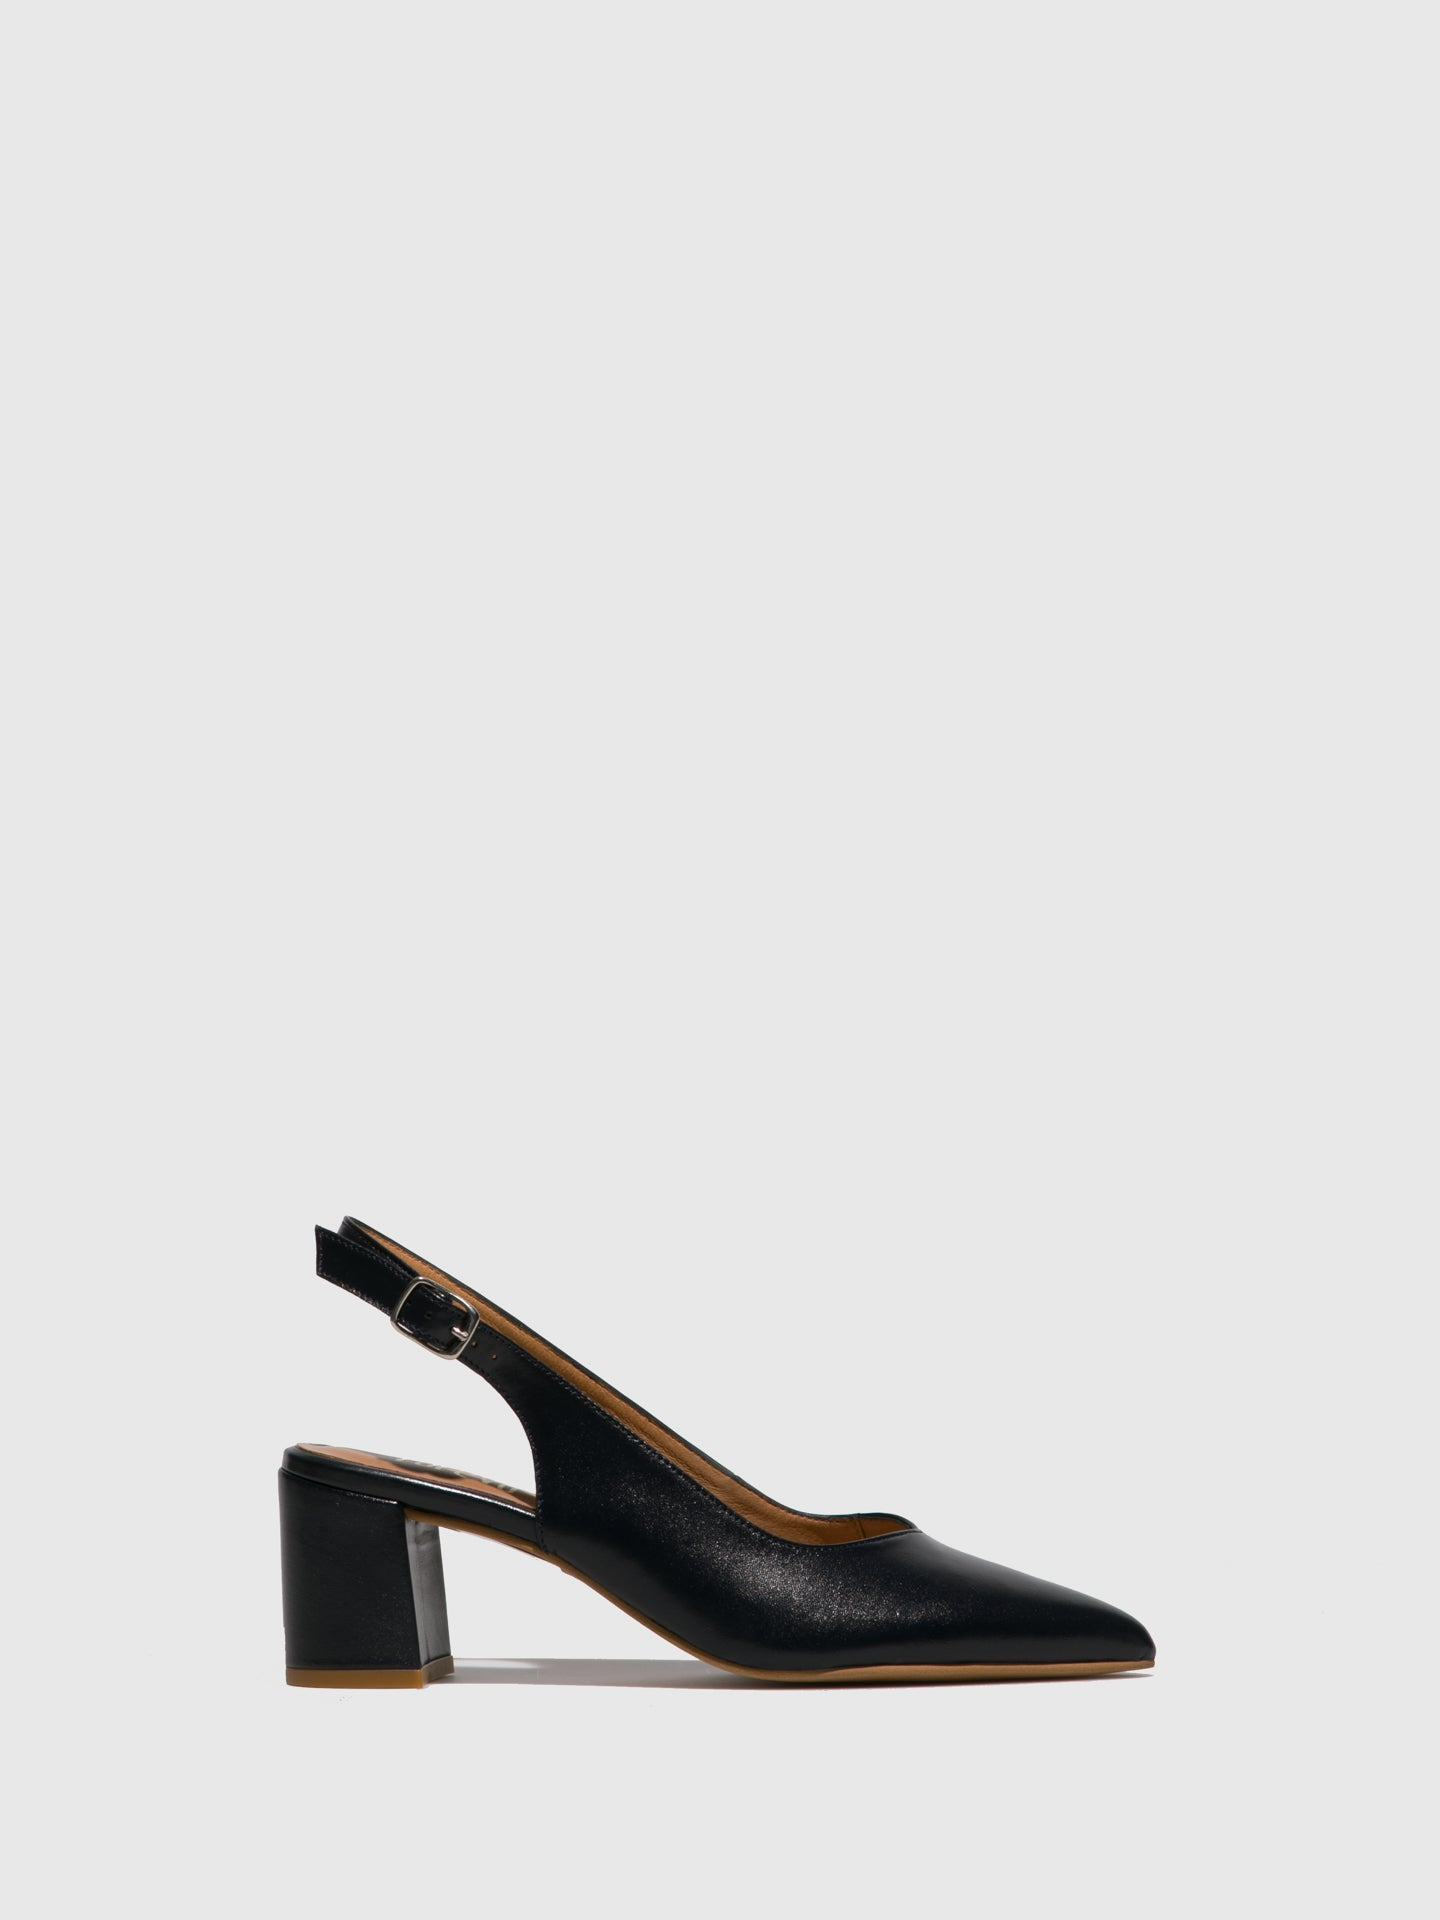 Foreva Blue Block Heel Shoes